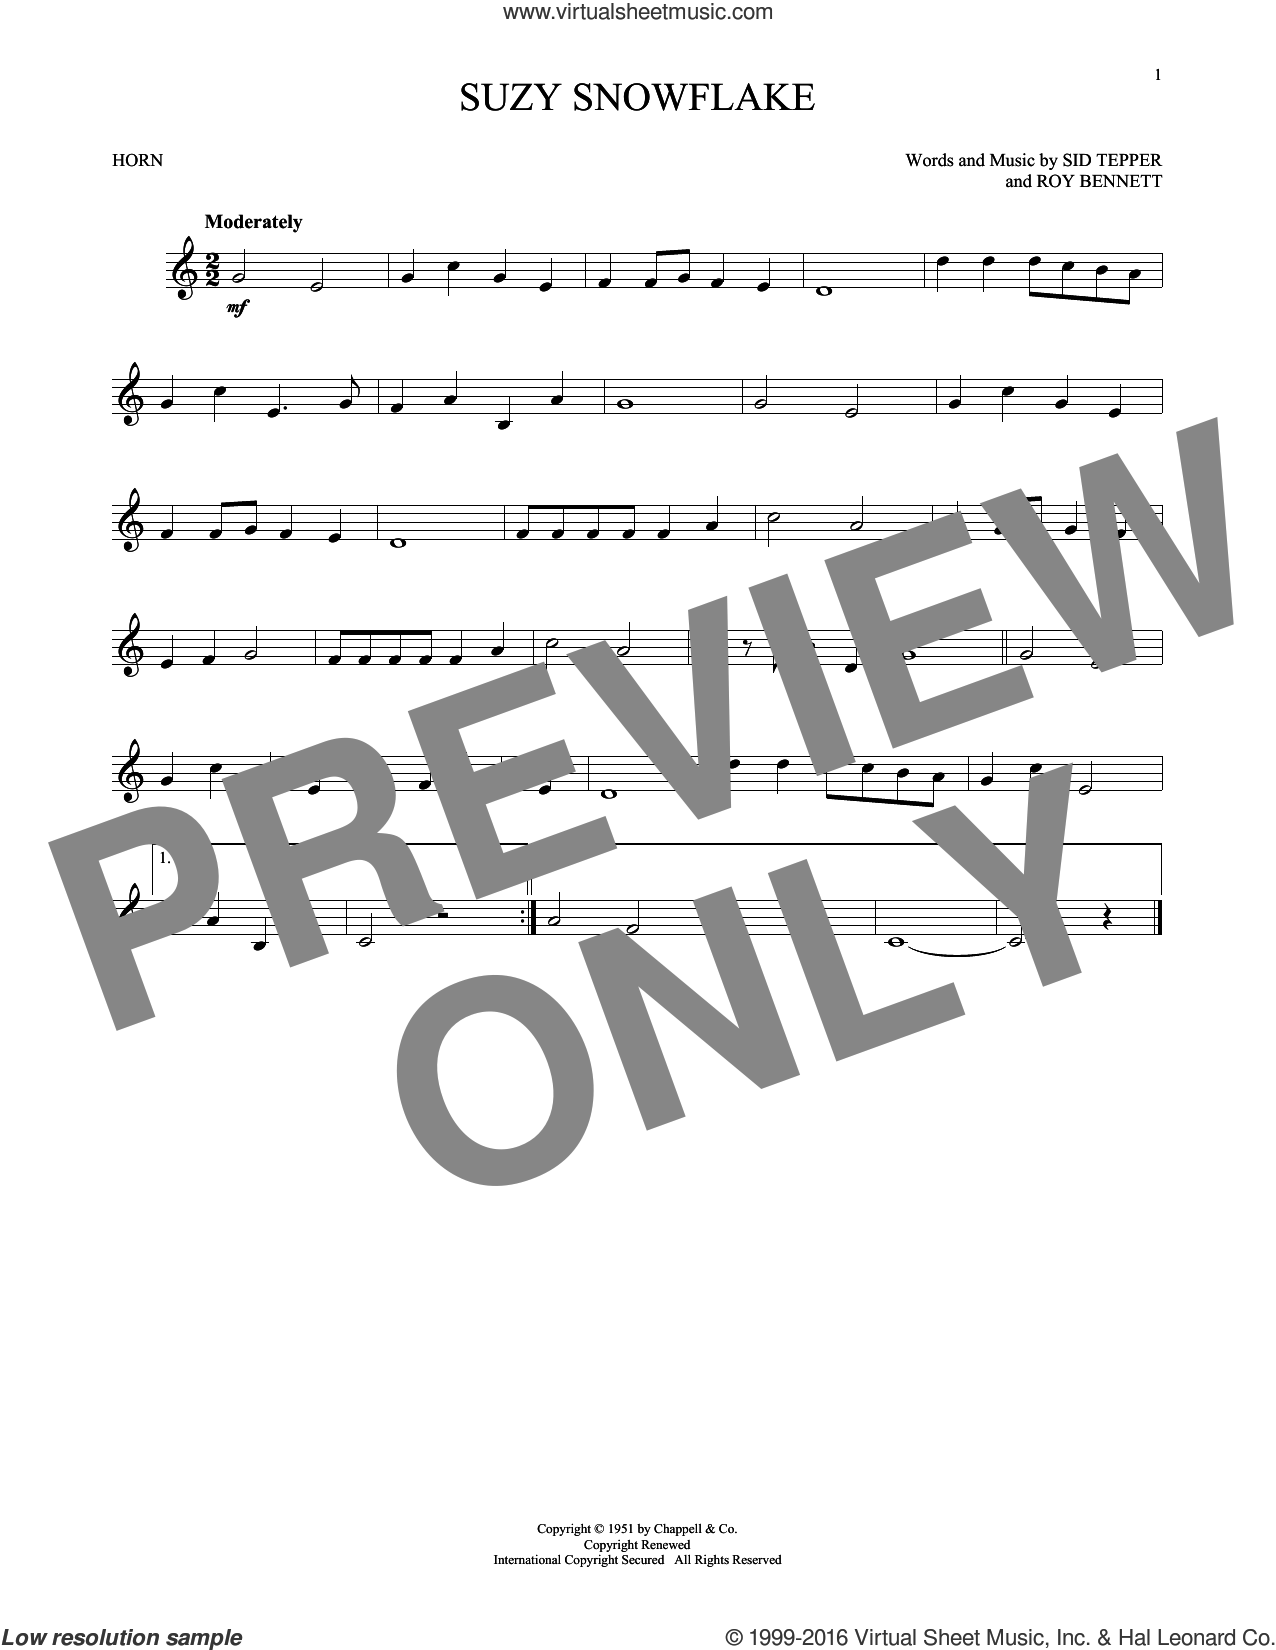 Suzy Snowflake sheet music for horn solo by Roy Bennett, Sid Tepper and Sid Tepper and Roy Bennett, intermediate skill level